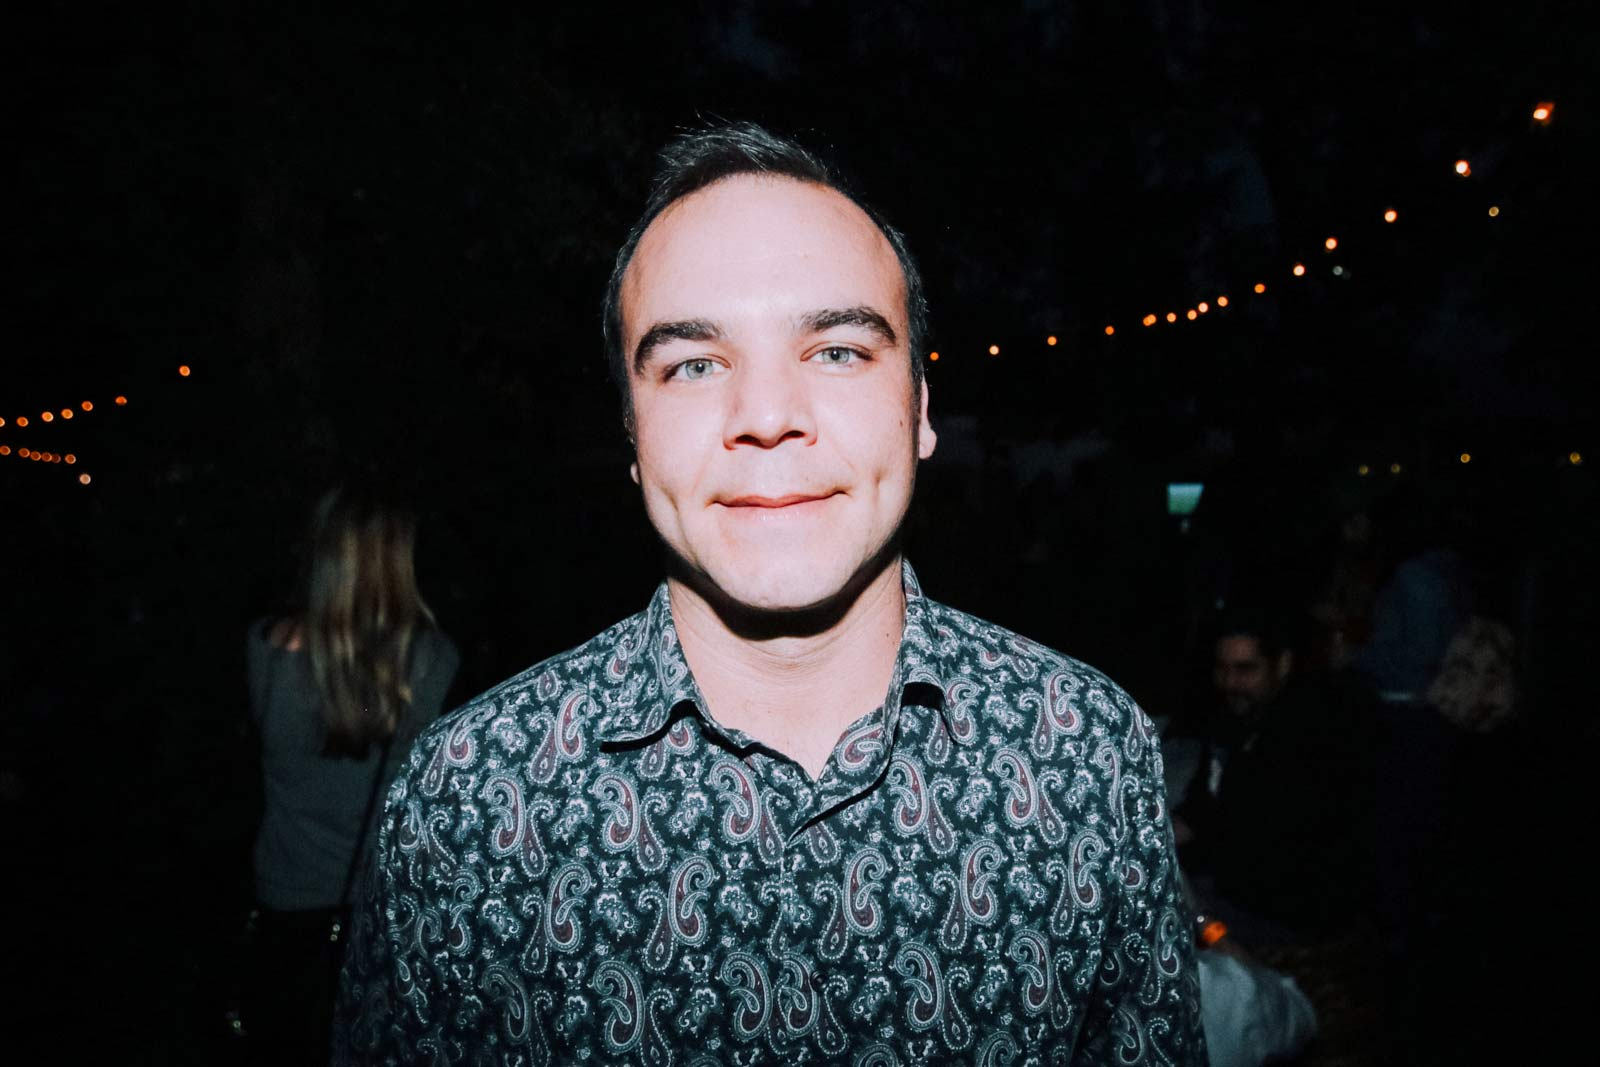 Sam-from-Future-Islands